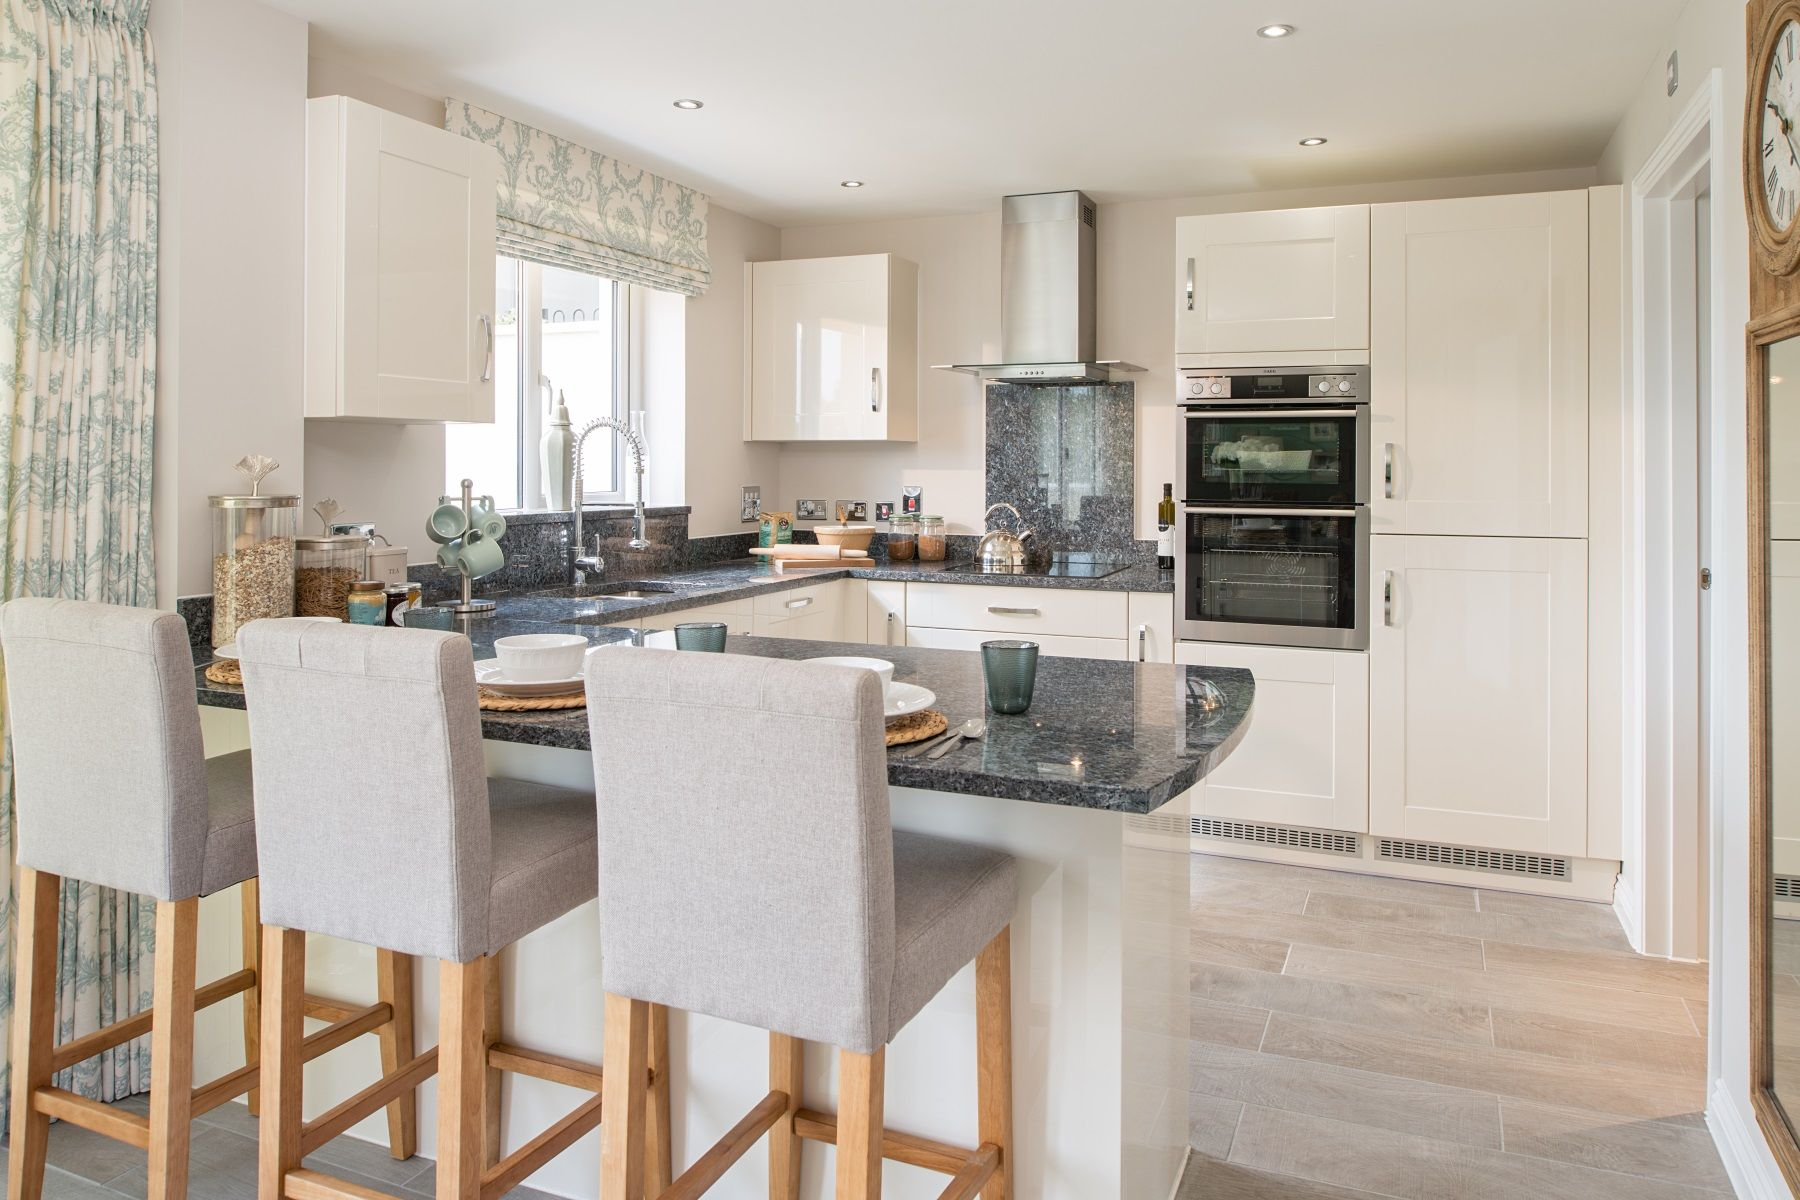 TW Exeter - Copleston Heights - Kennilworth example kitchen